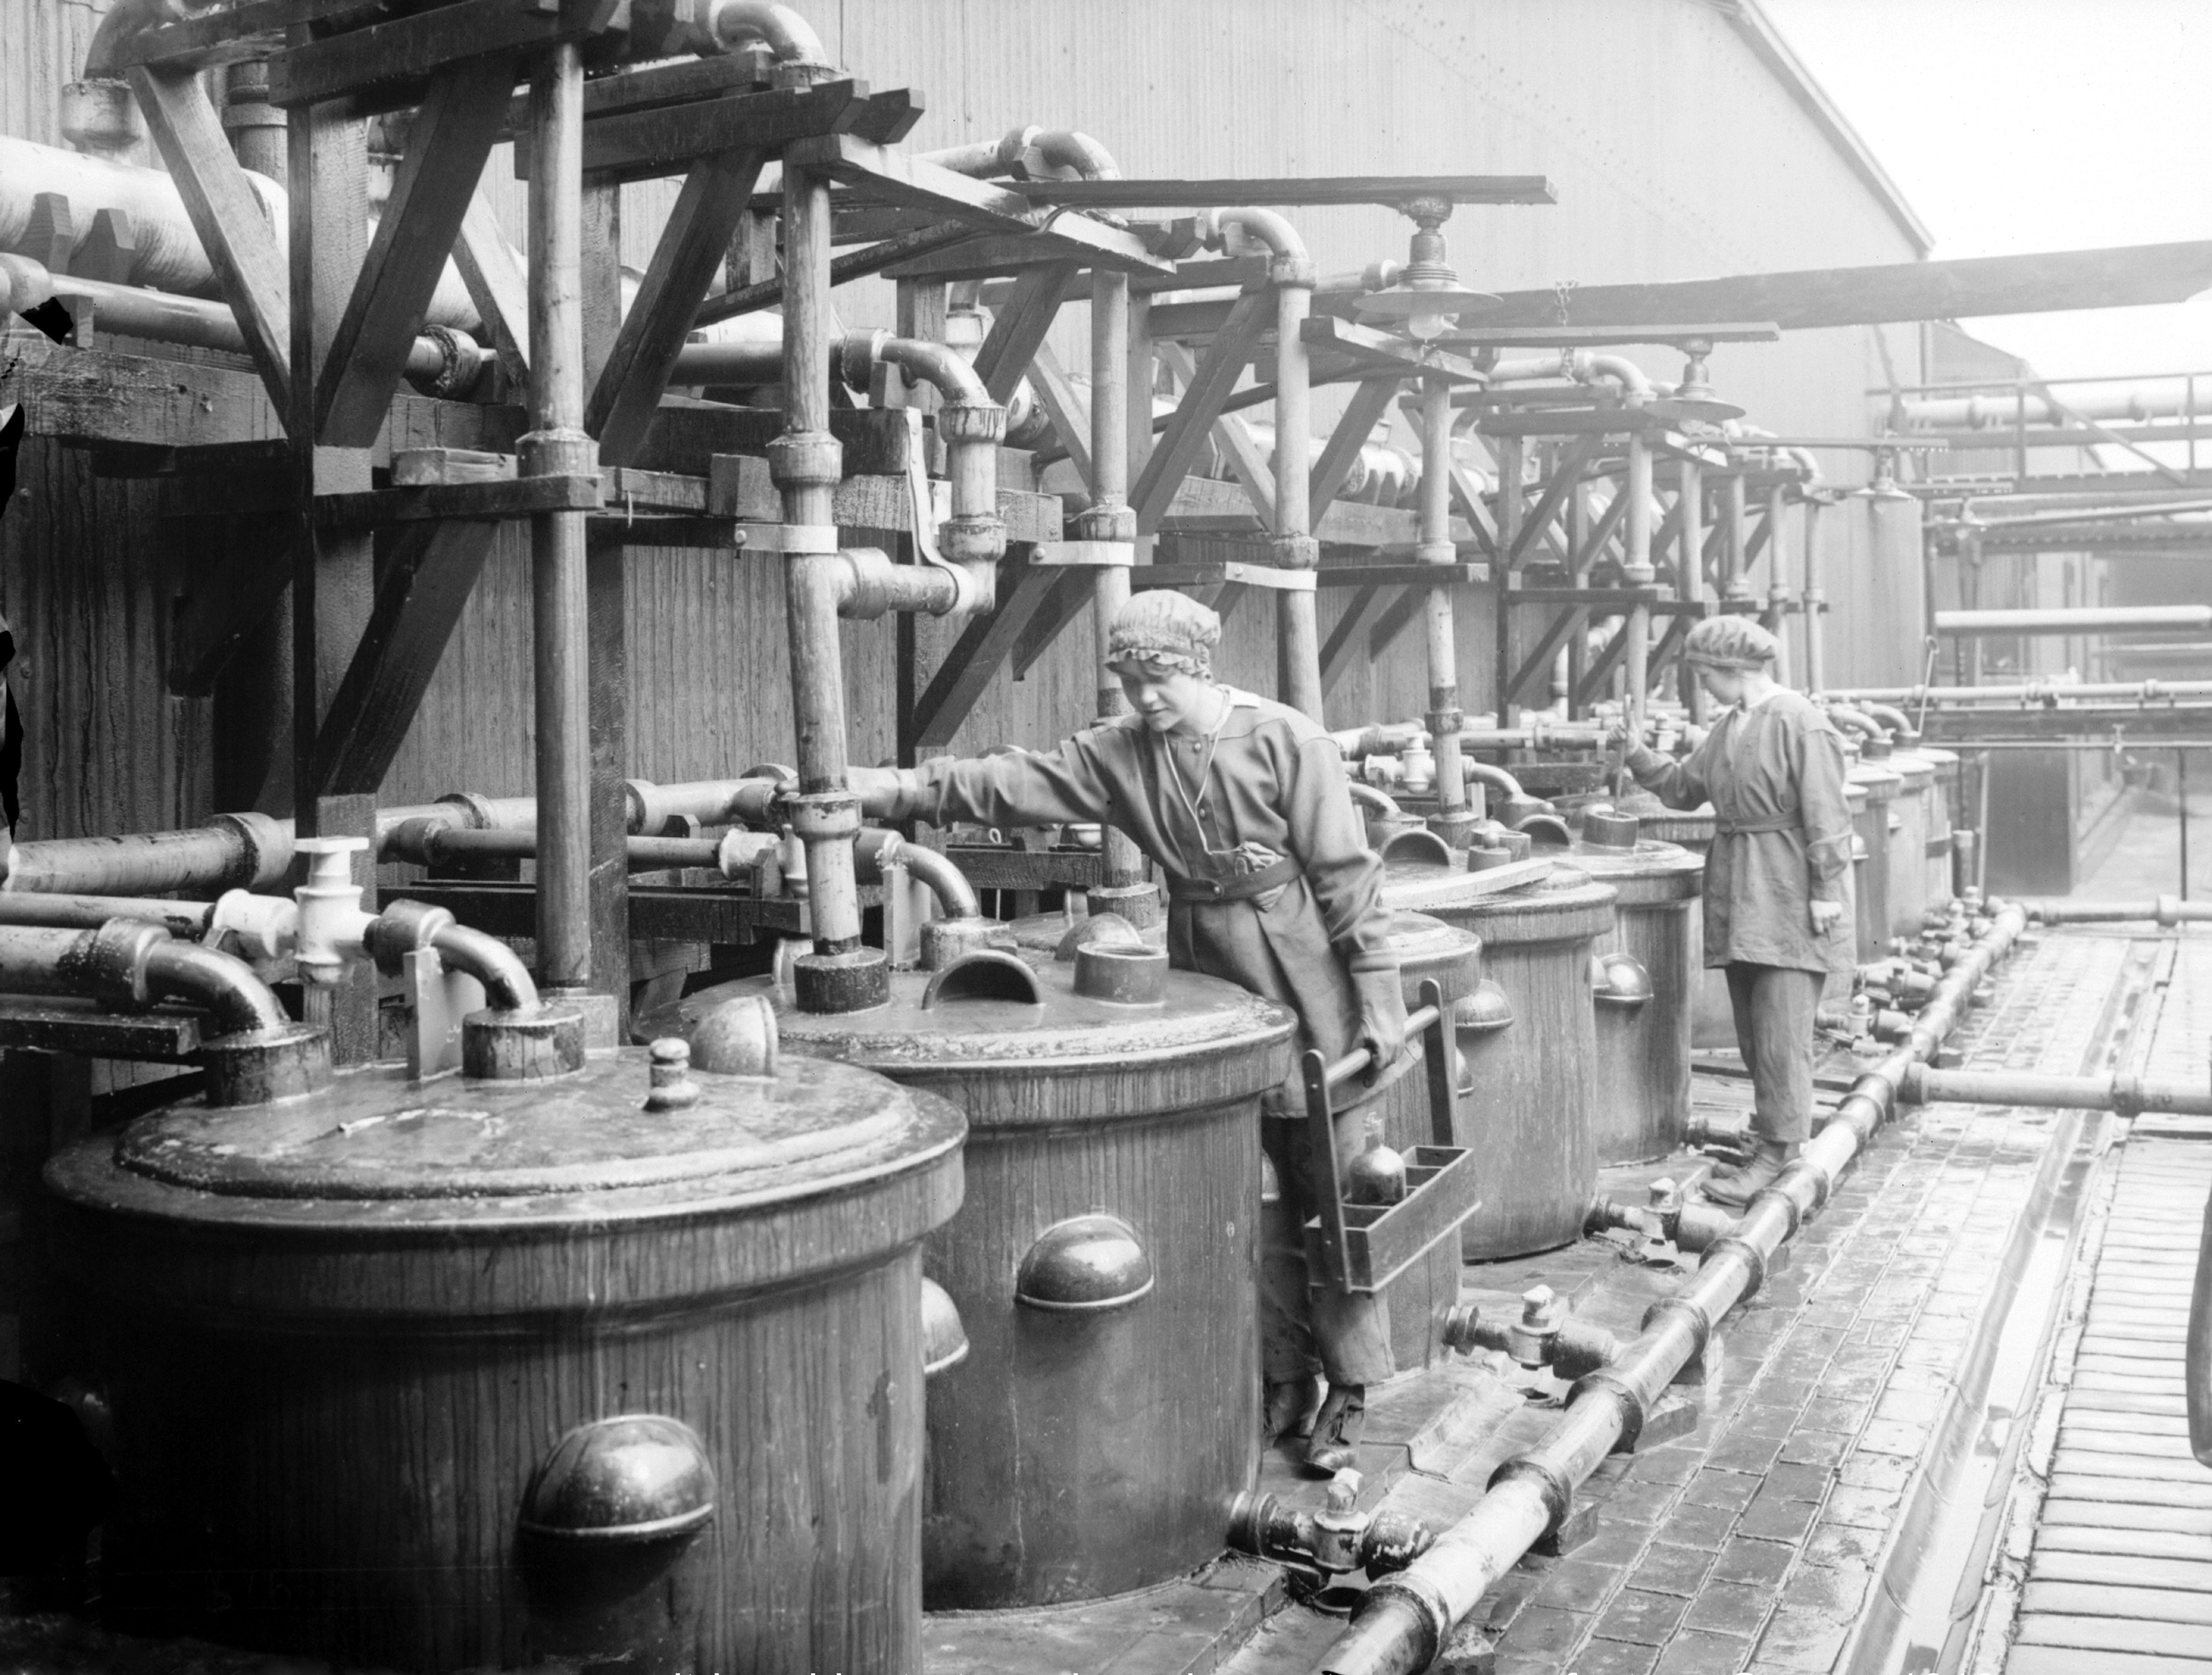 Nitric acid retorts and receivers in operation (12 July 1918), National Records of Scotland (archive reference: GD1/1011/61)